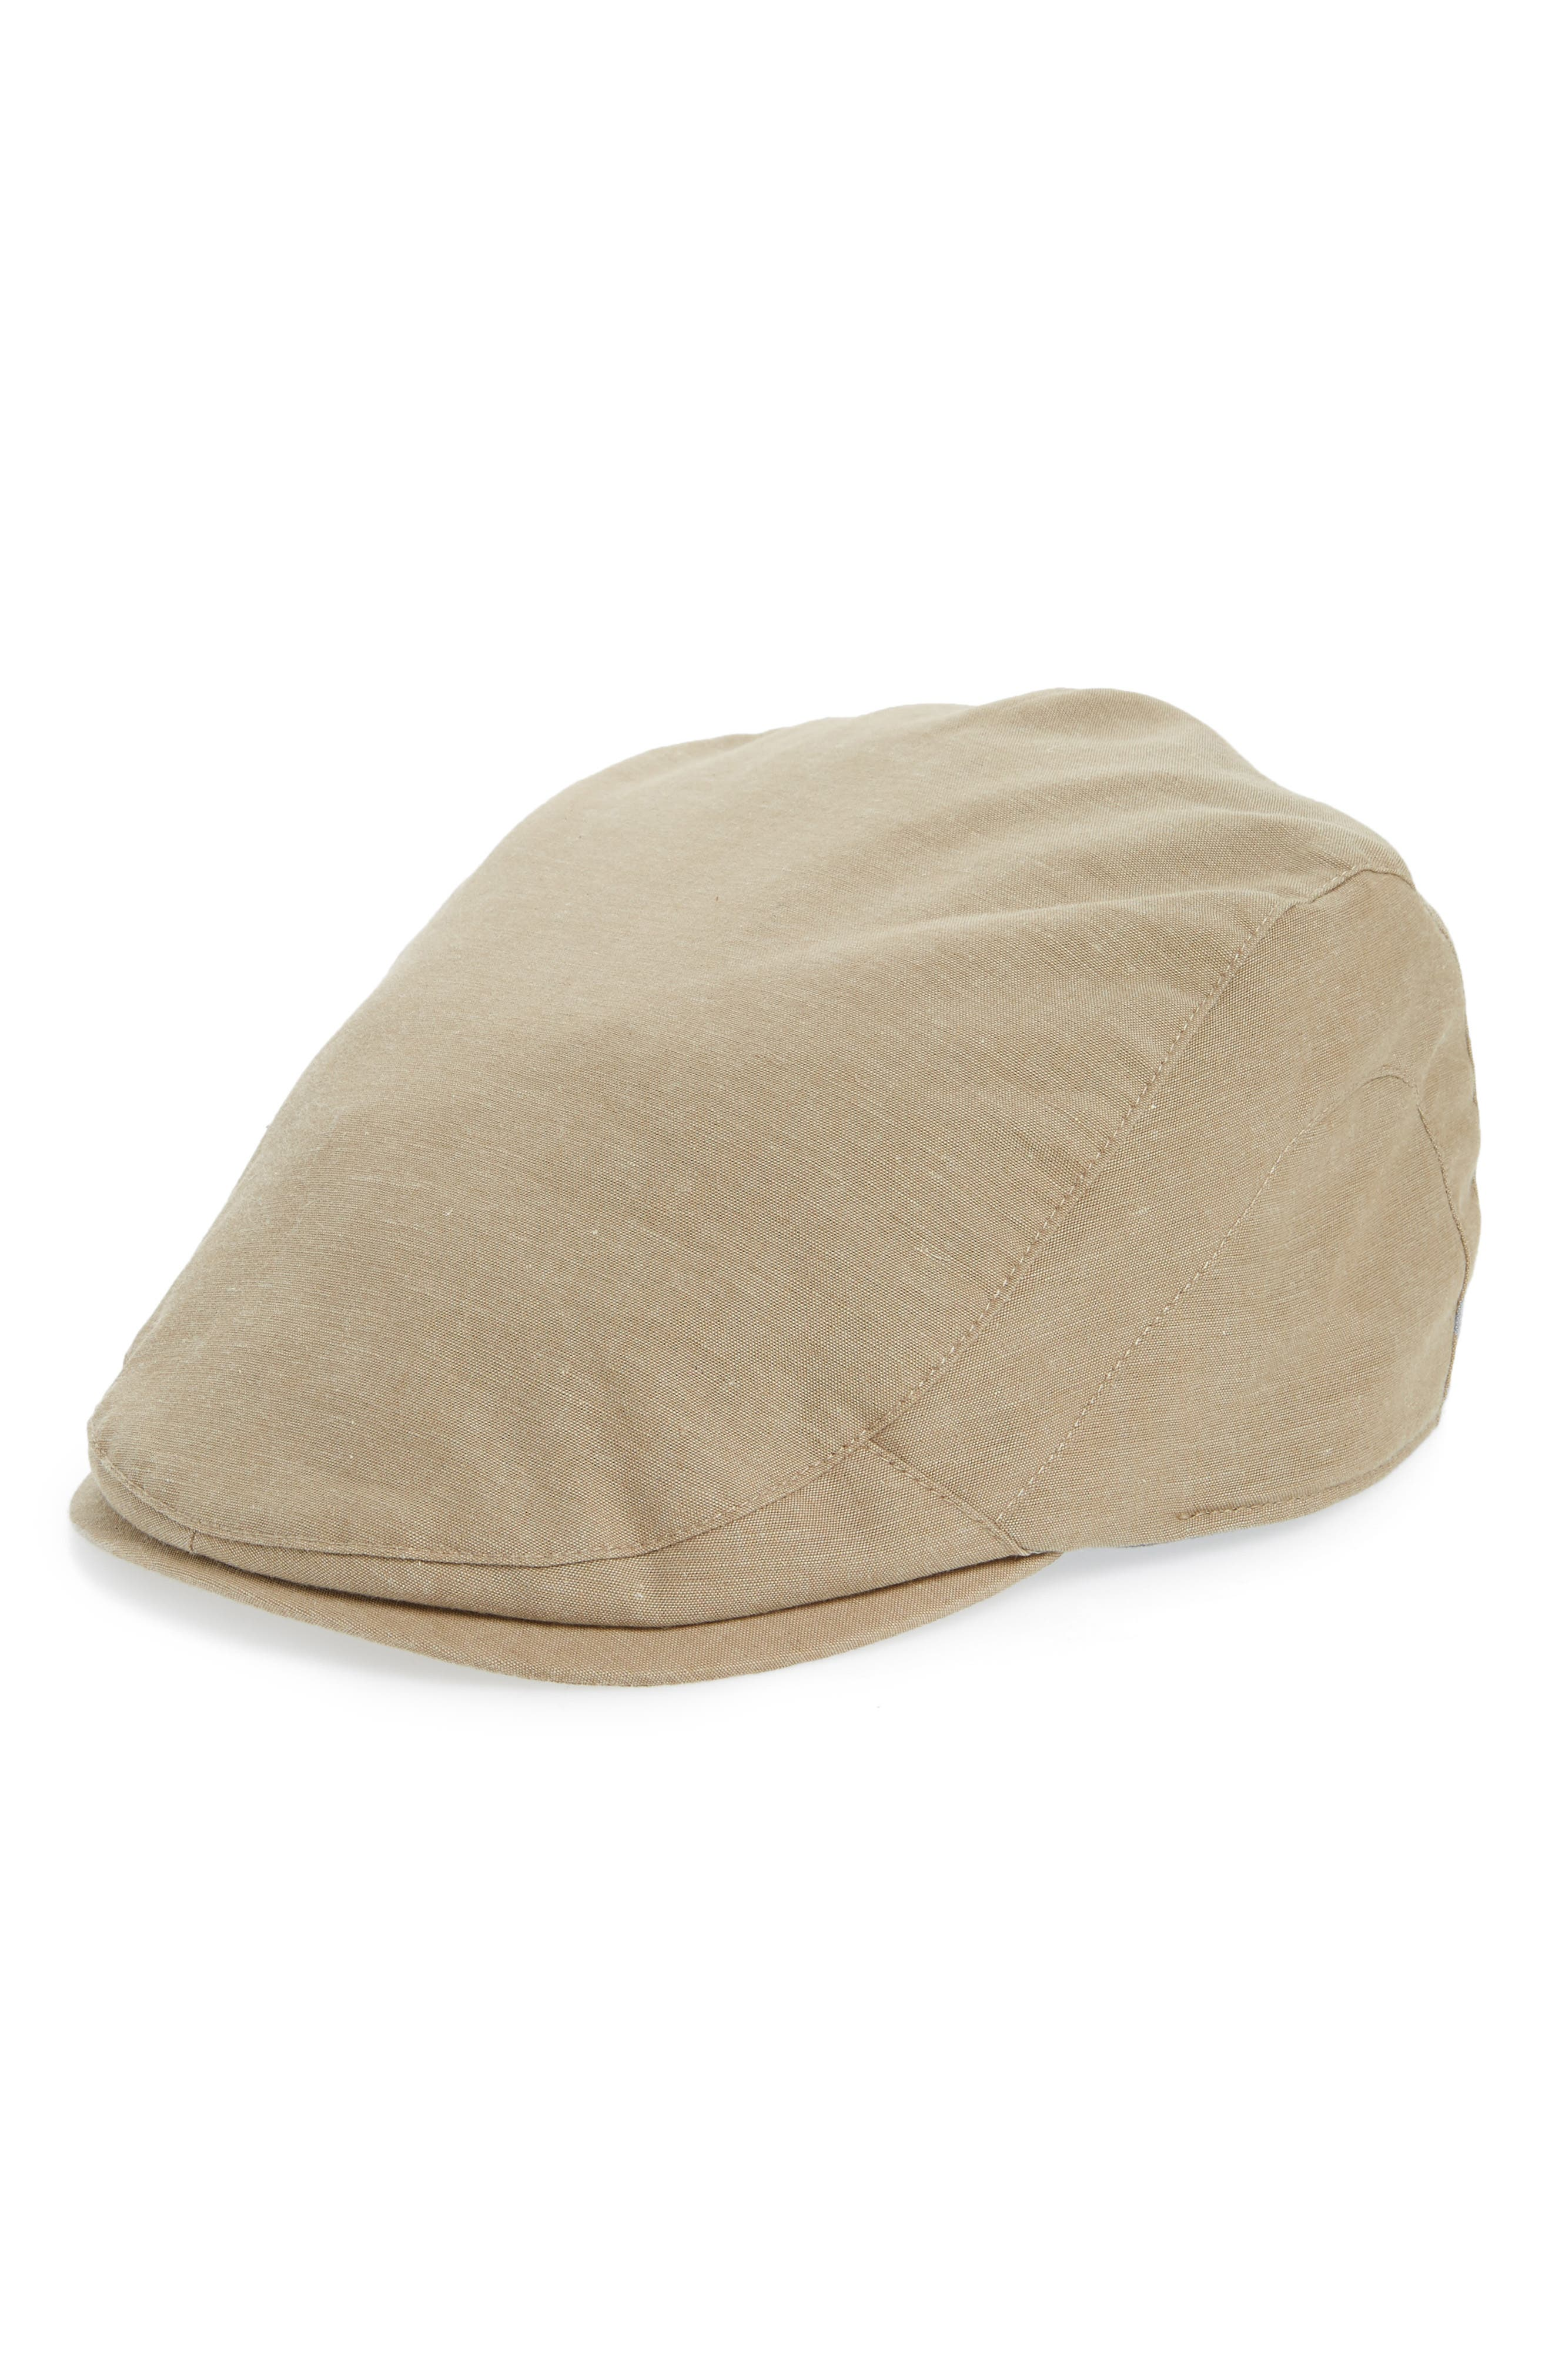 . All About It Driving Cap